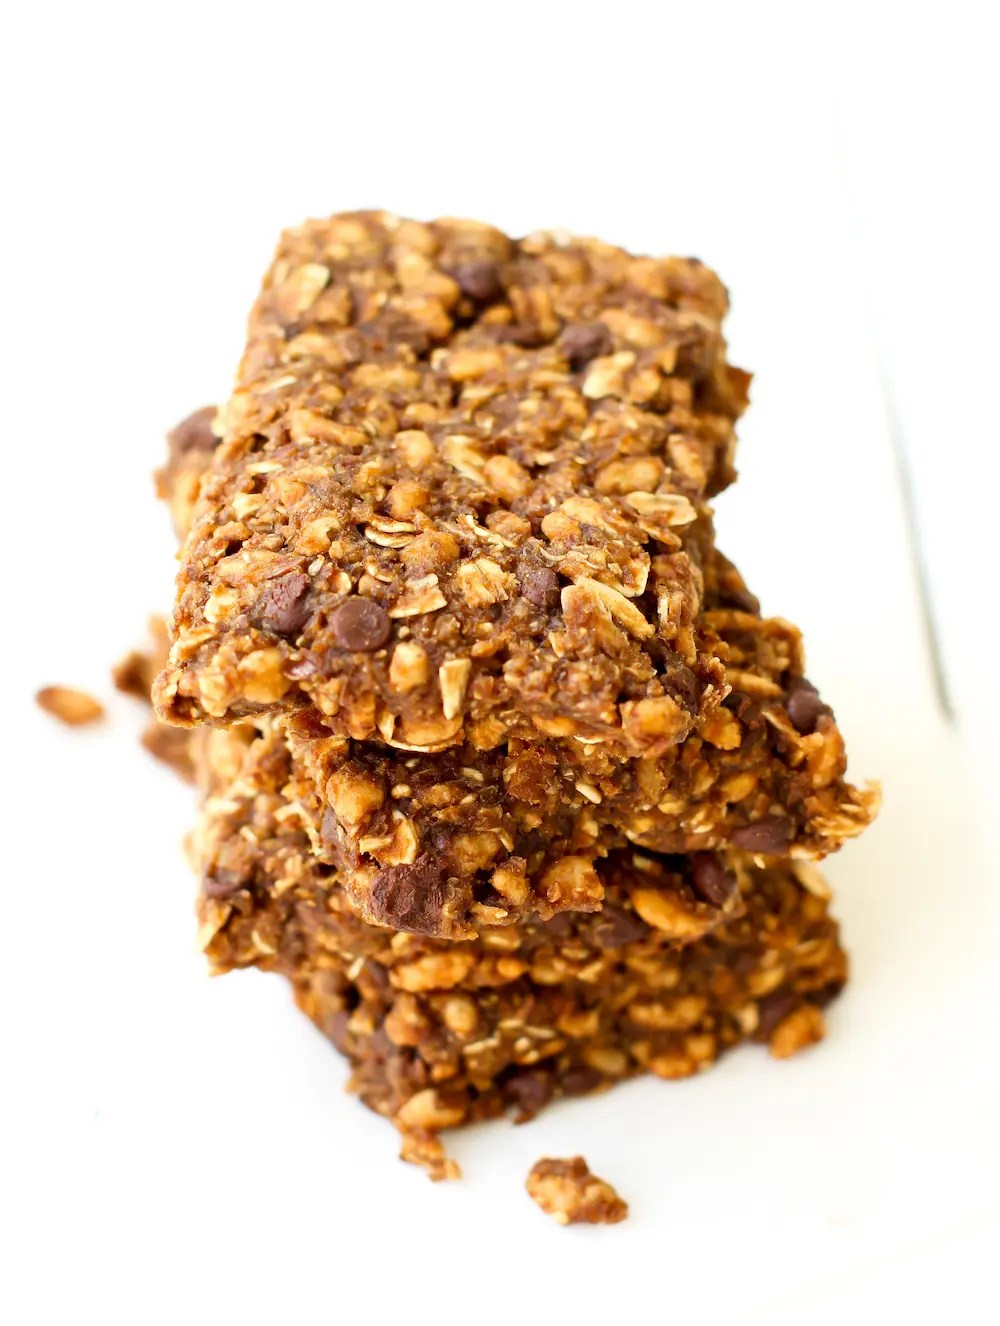 DIY CHOCOLATE CHIP CLIF BARS